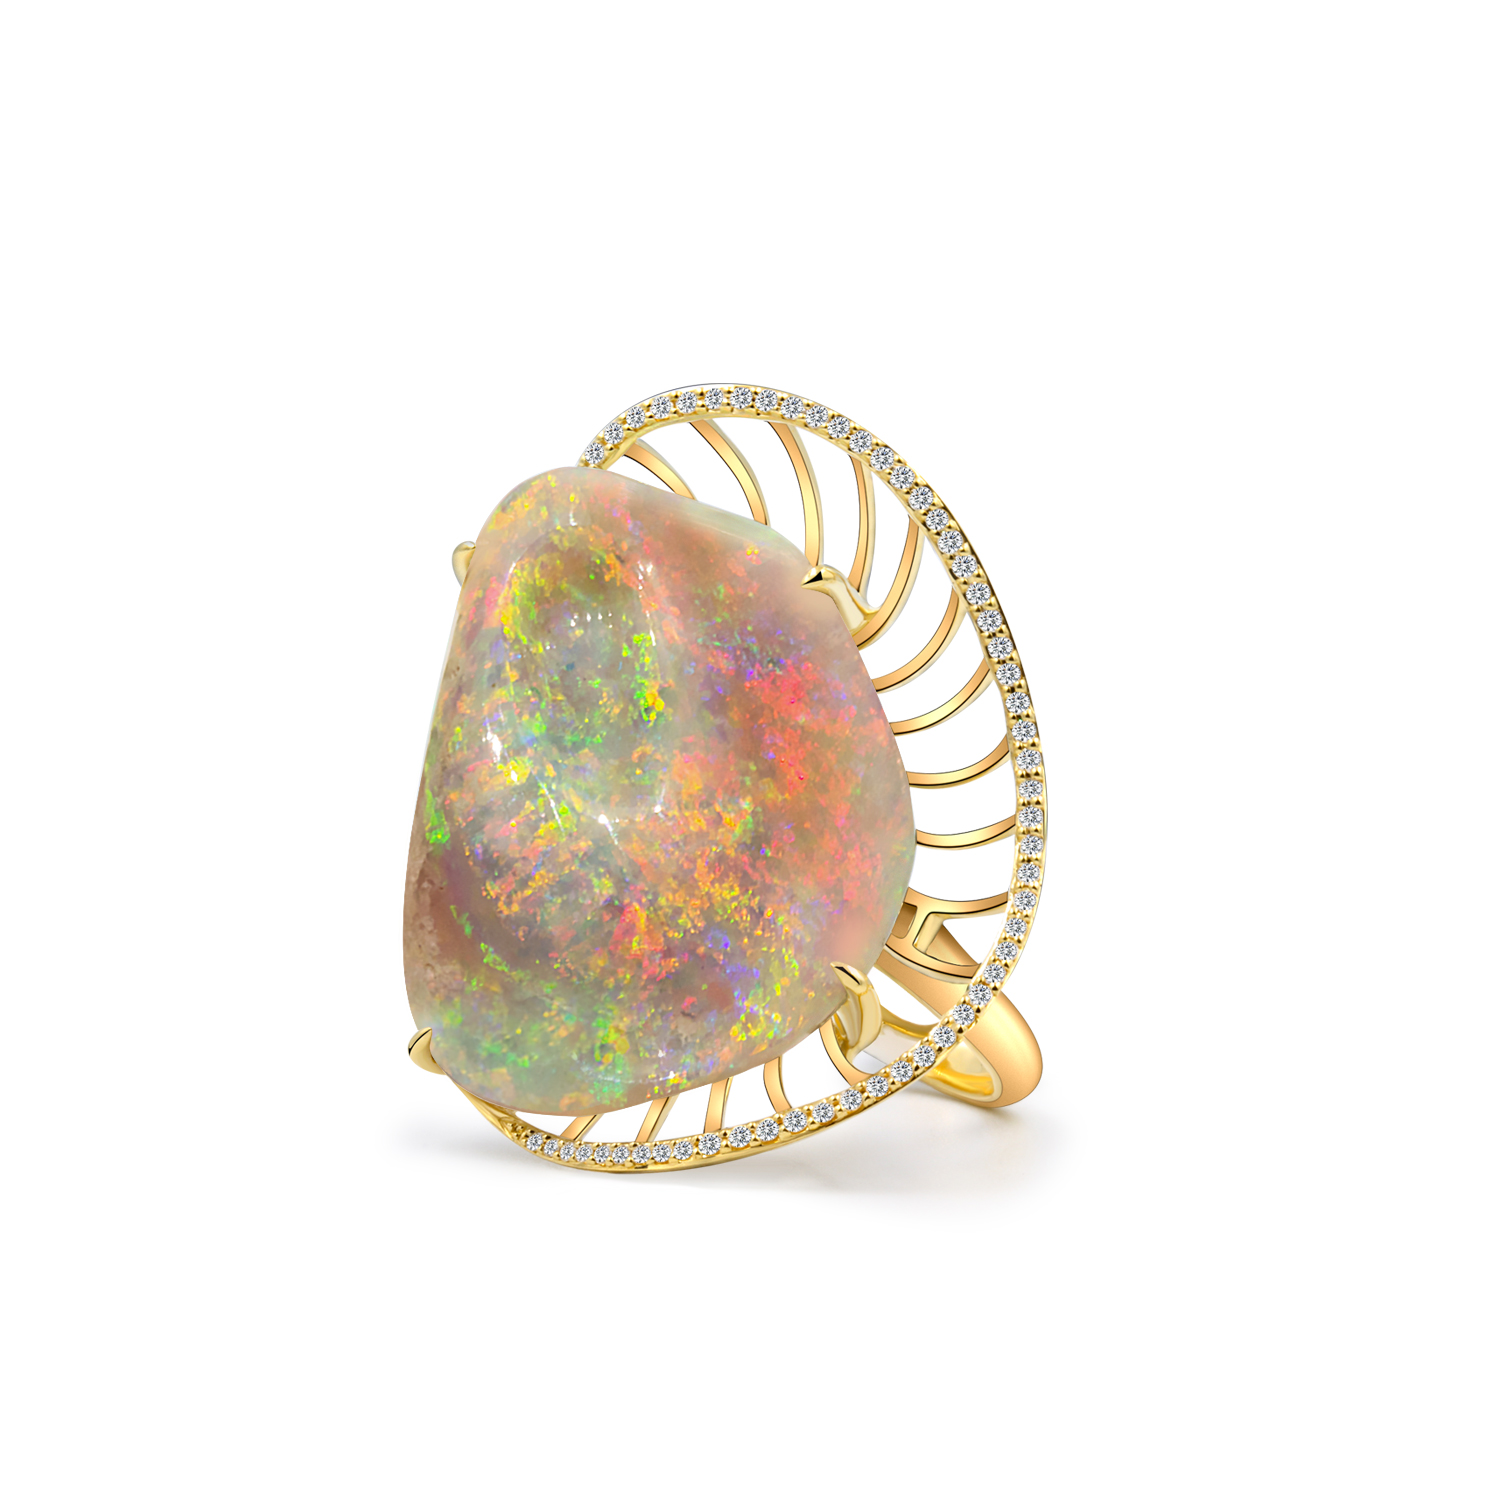 Rare Opalised Fossil Seashell Ring set in 18k with Diamonds displaying Floral Pinfire